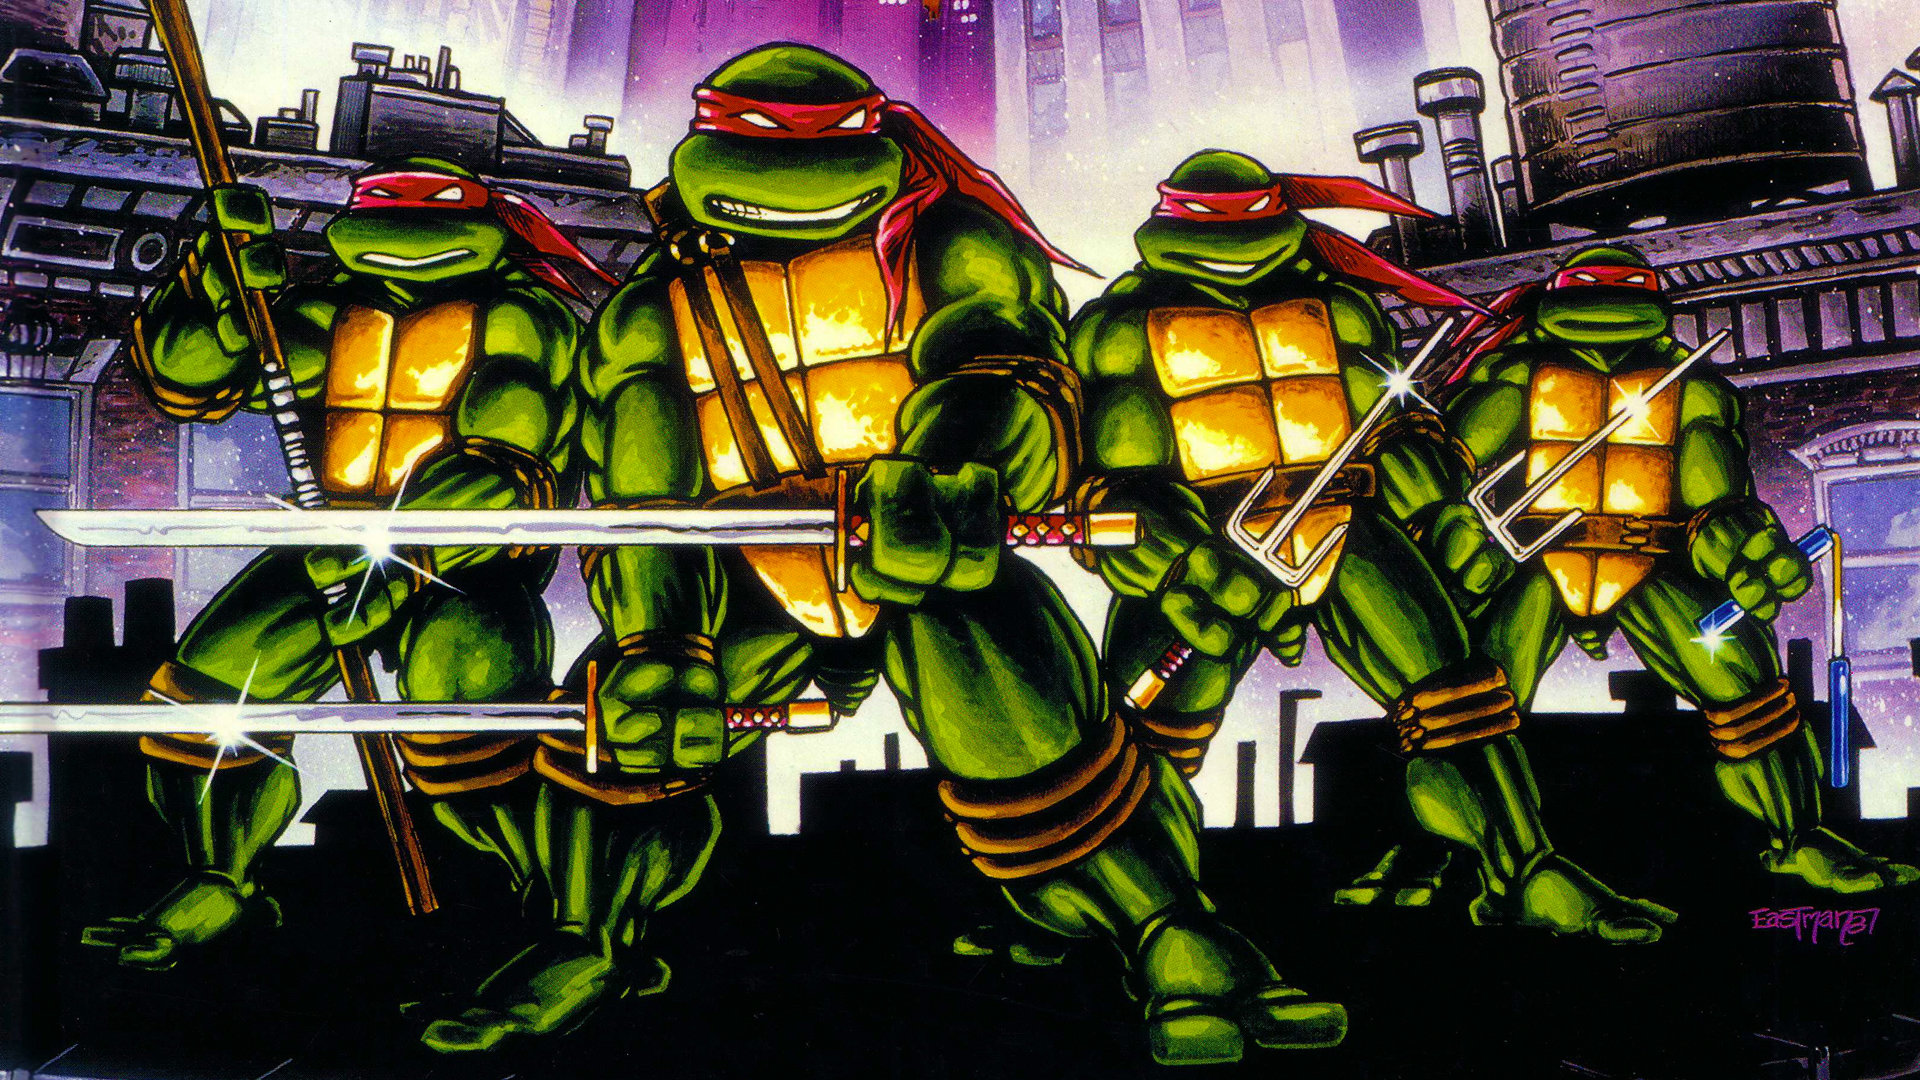 Download Hd 1920x1080 Raphael TMNT PC Wallpaper ID111270 For Free